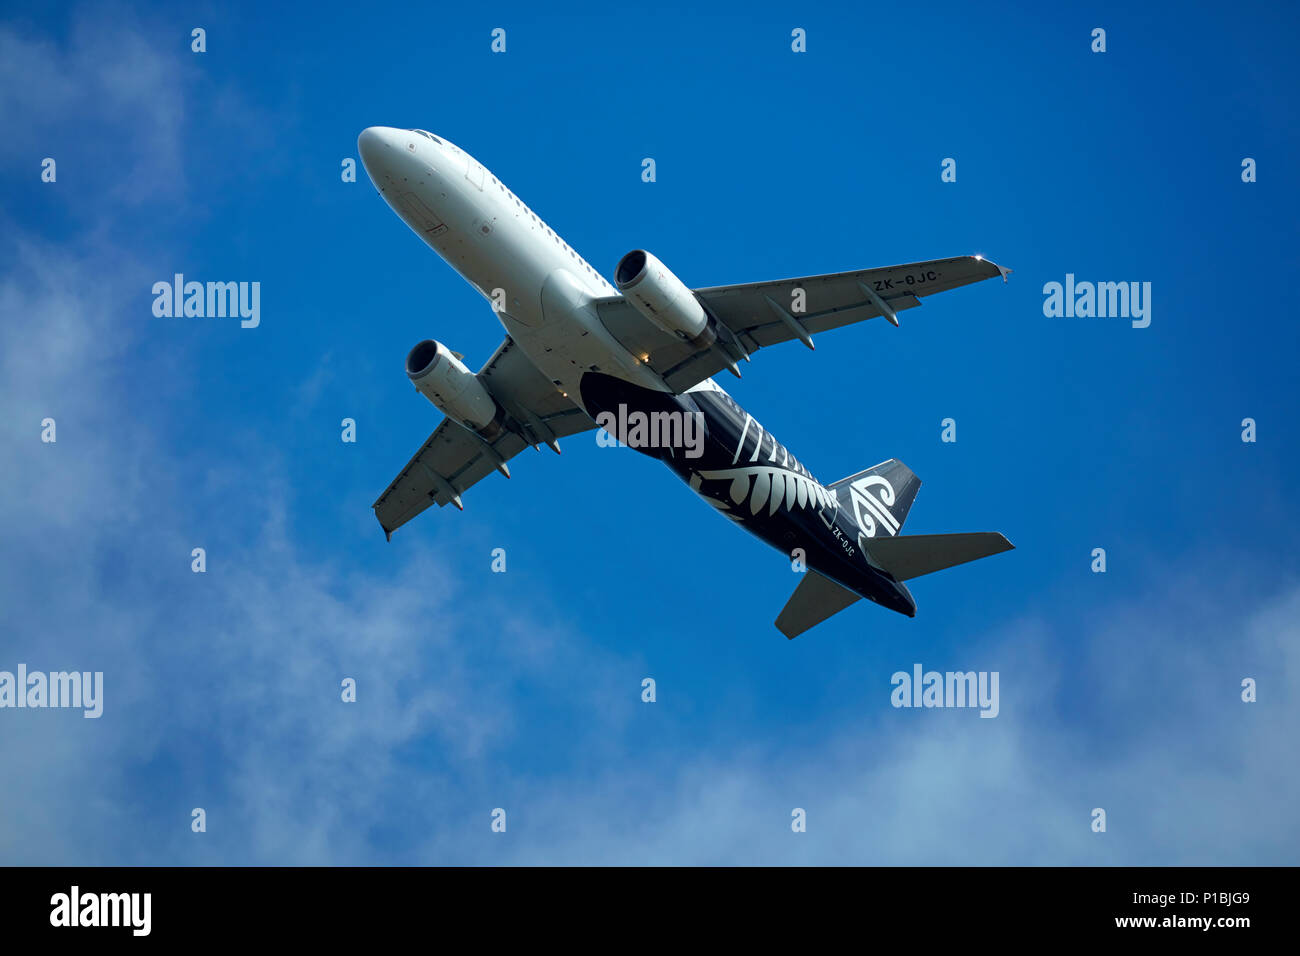 Air New Zealand Airbus A320-232, Wellington, North Island, New Zealand - Stock Image